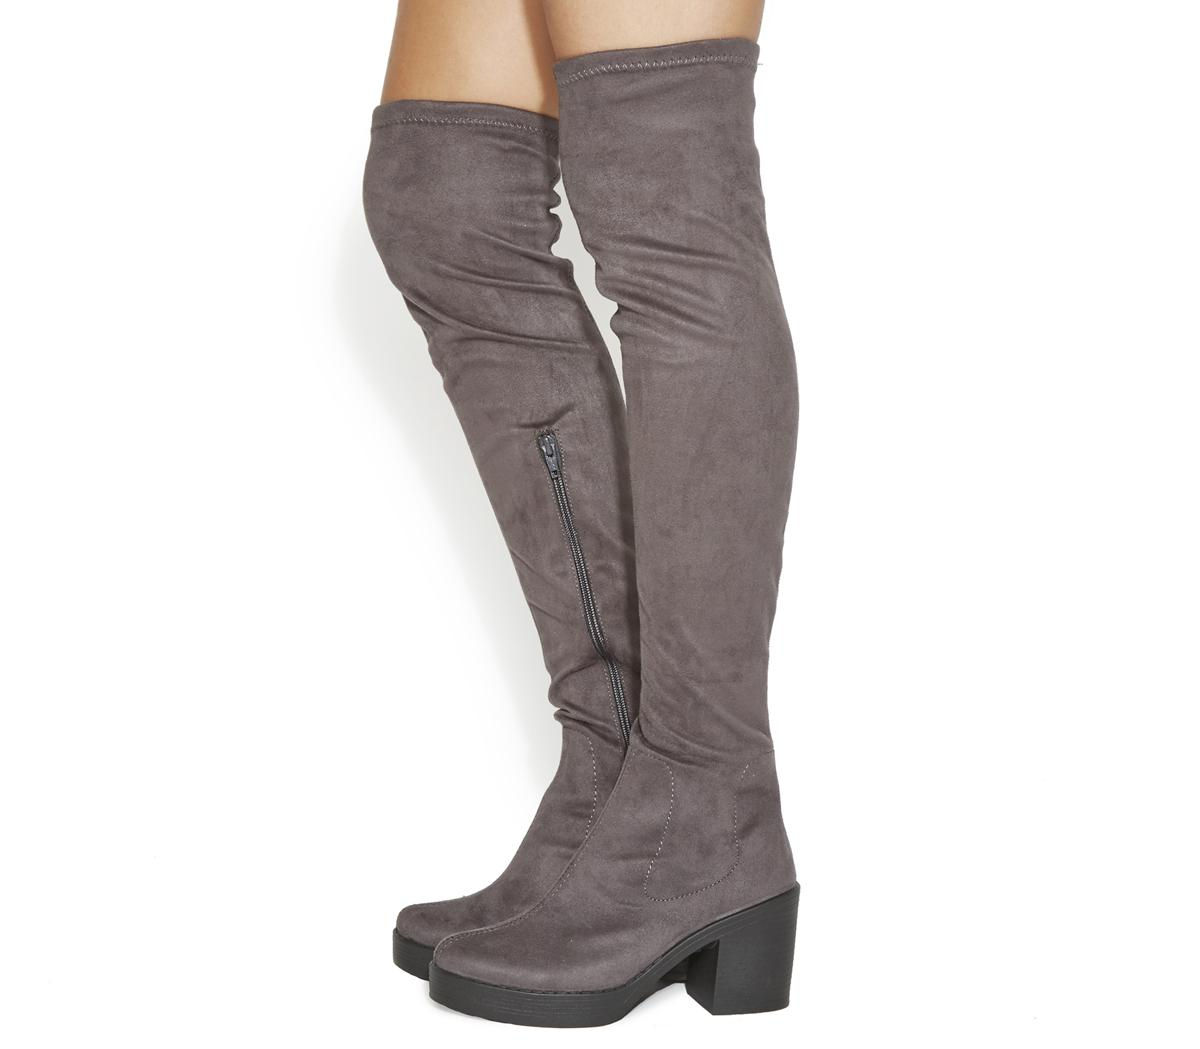 Knee Boots Grey - Knee High Boots